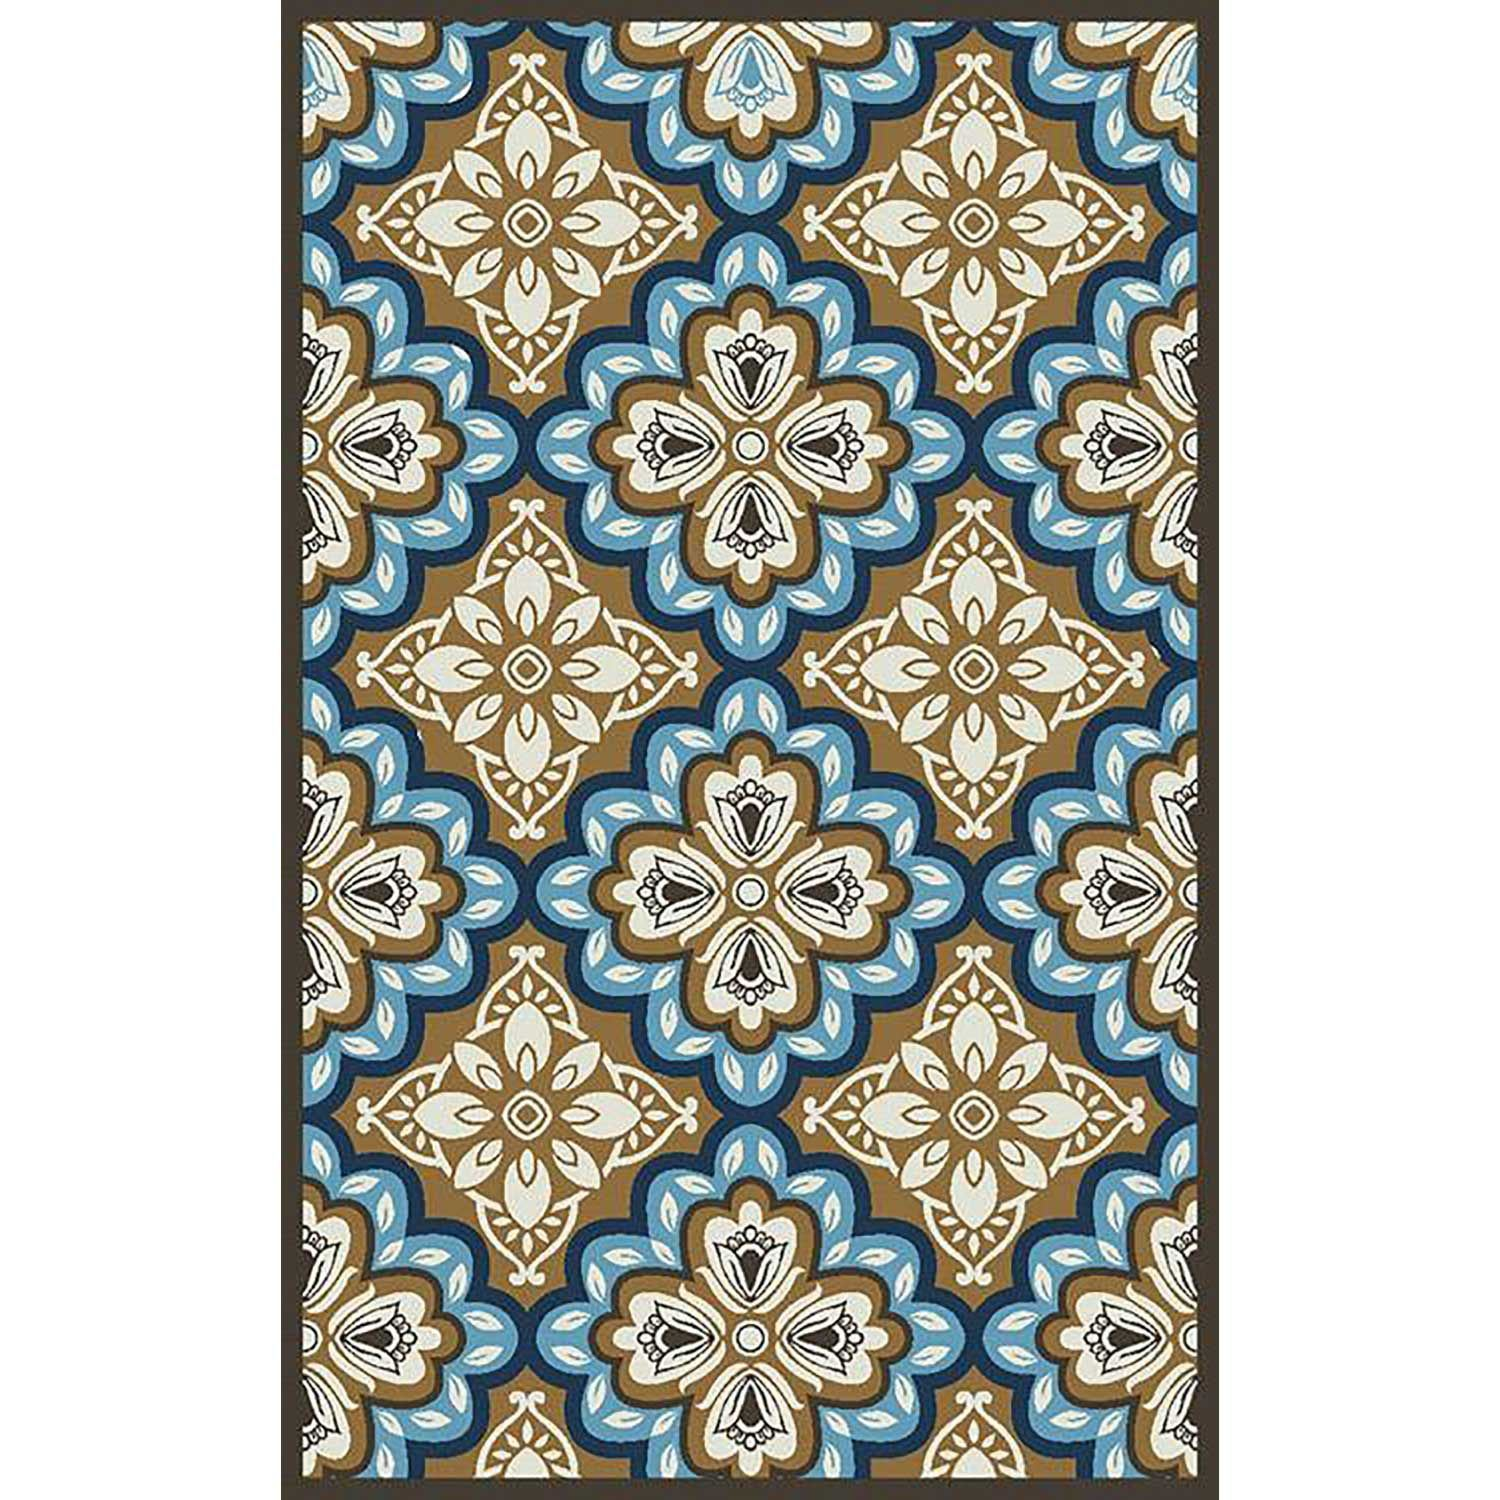 Freya Latte Blue Medallion 8x10 Outdoor Rug 6005 54 67 Central